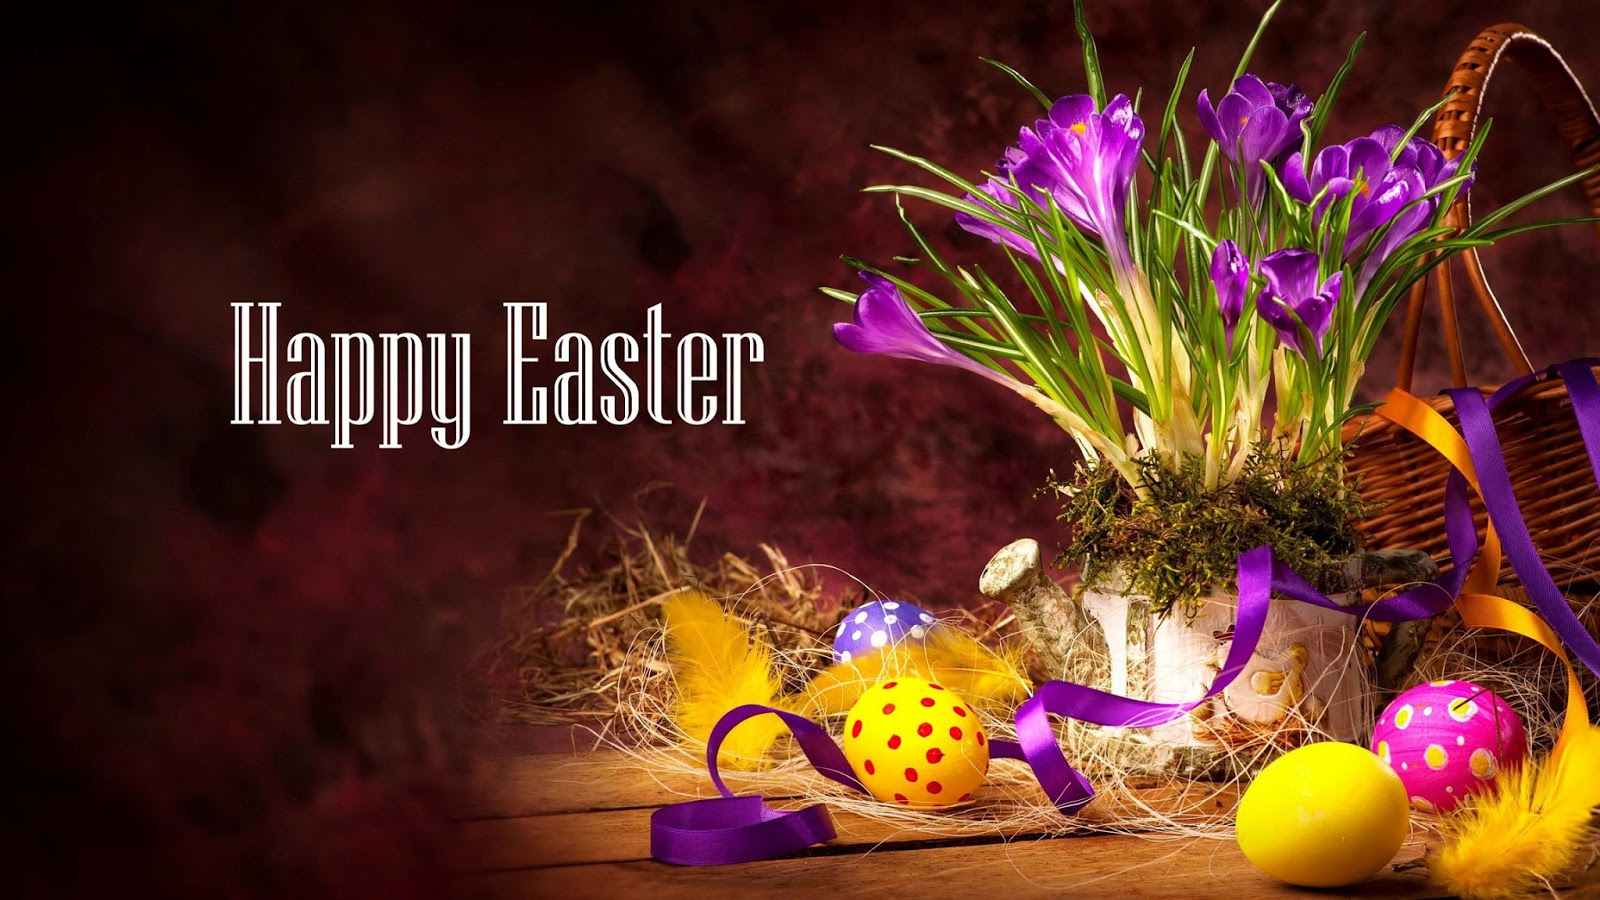 Happy easter 2021 HD images Free Download (3)